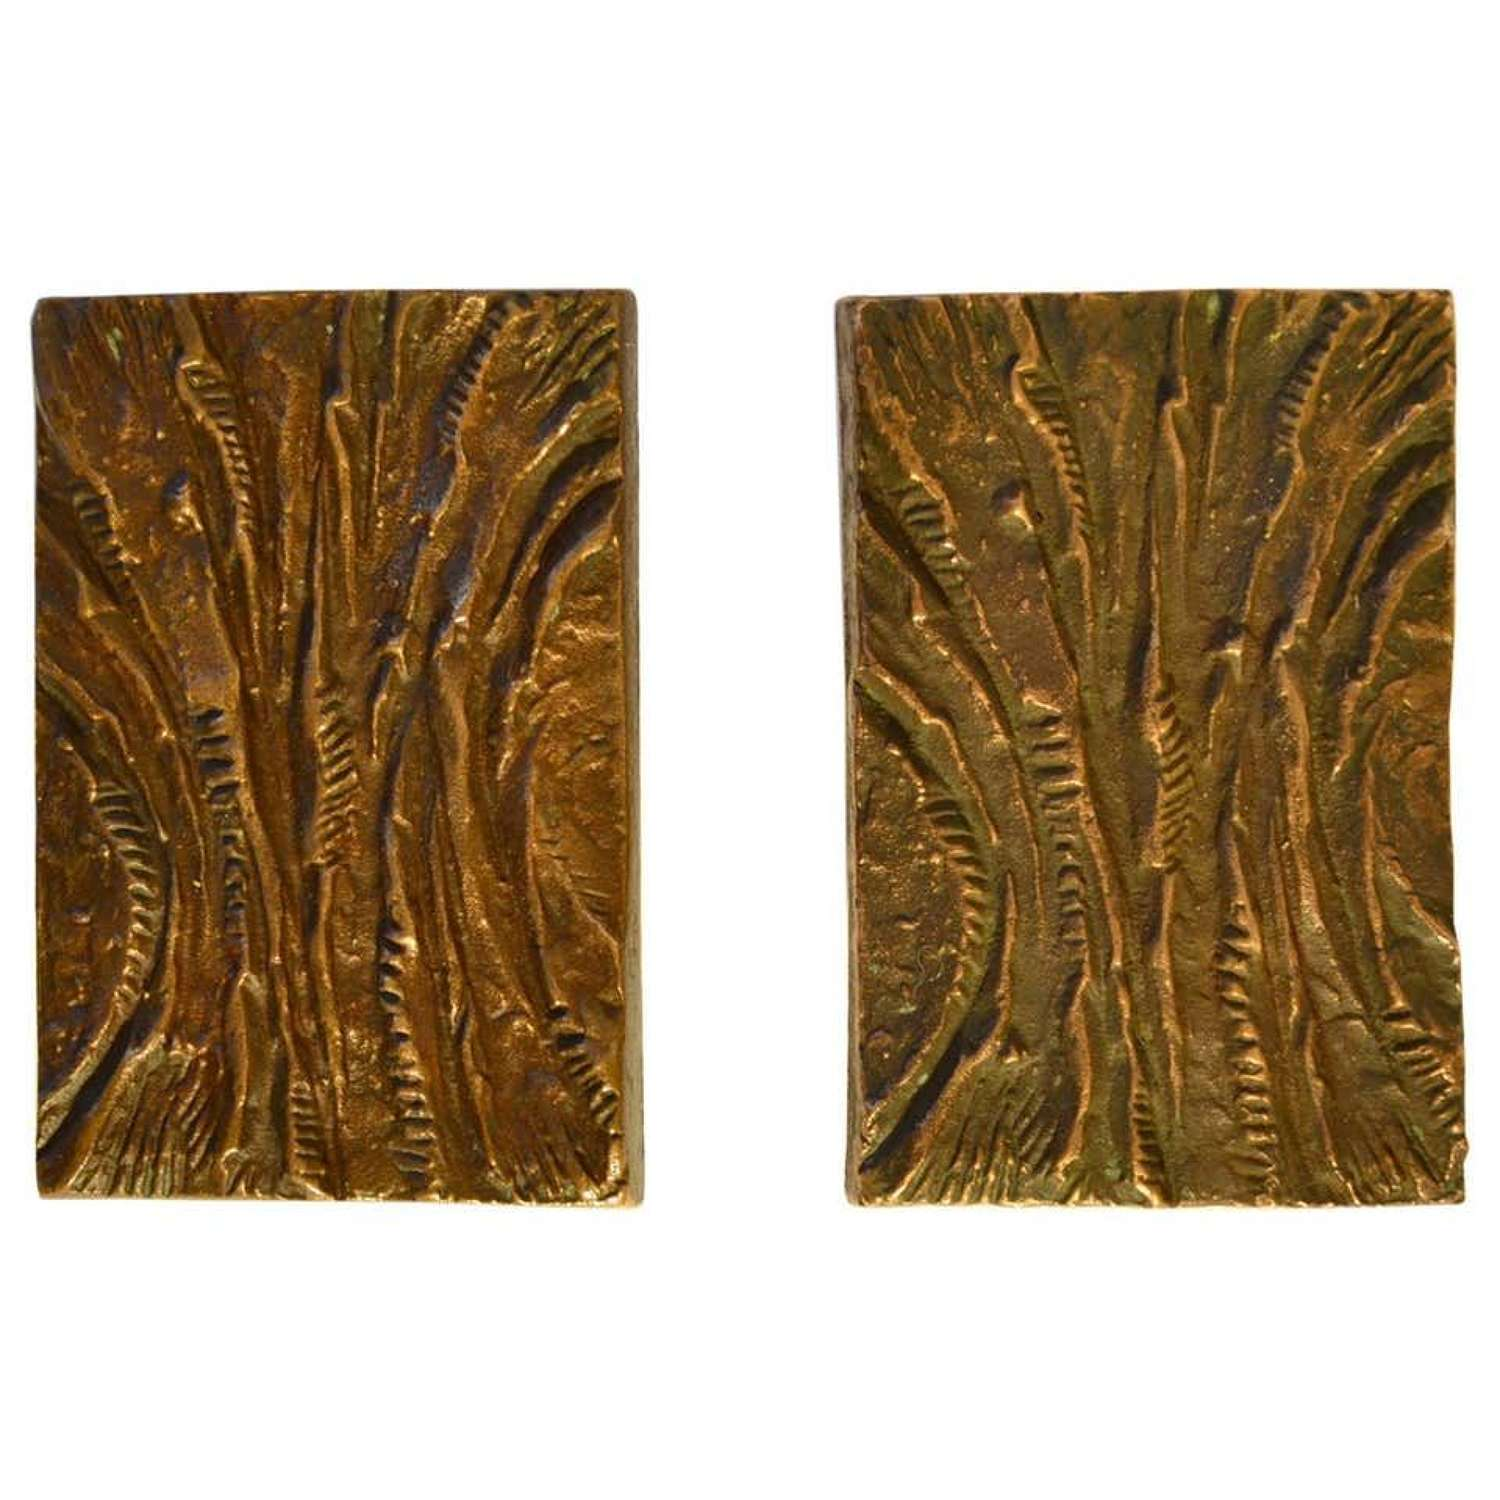 Bronze Push and Pull Door Handles with Curved pattern